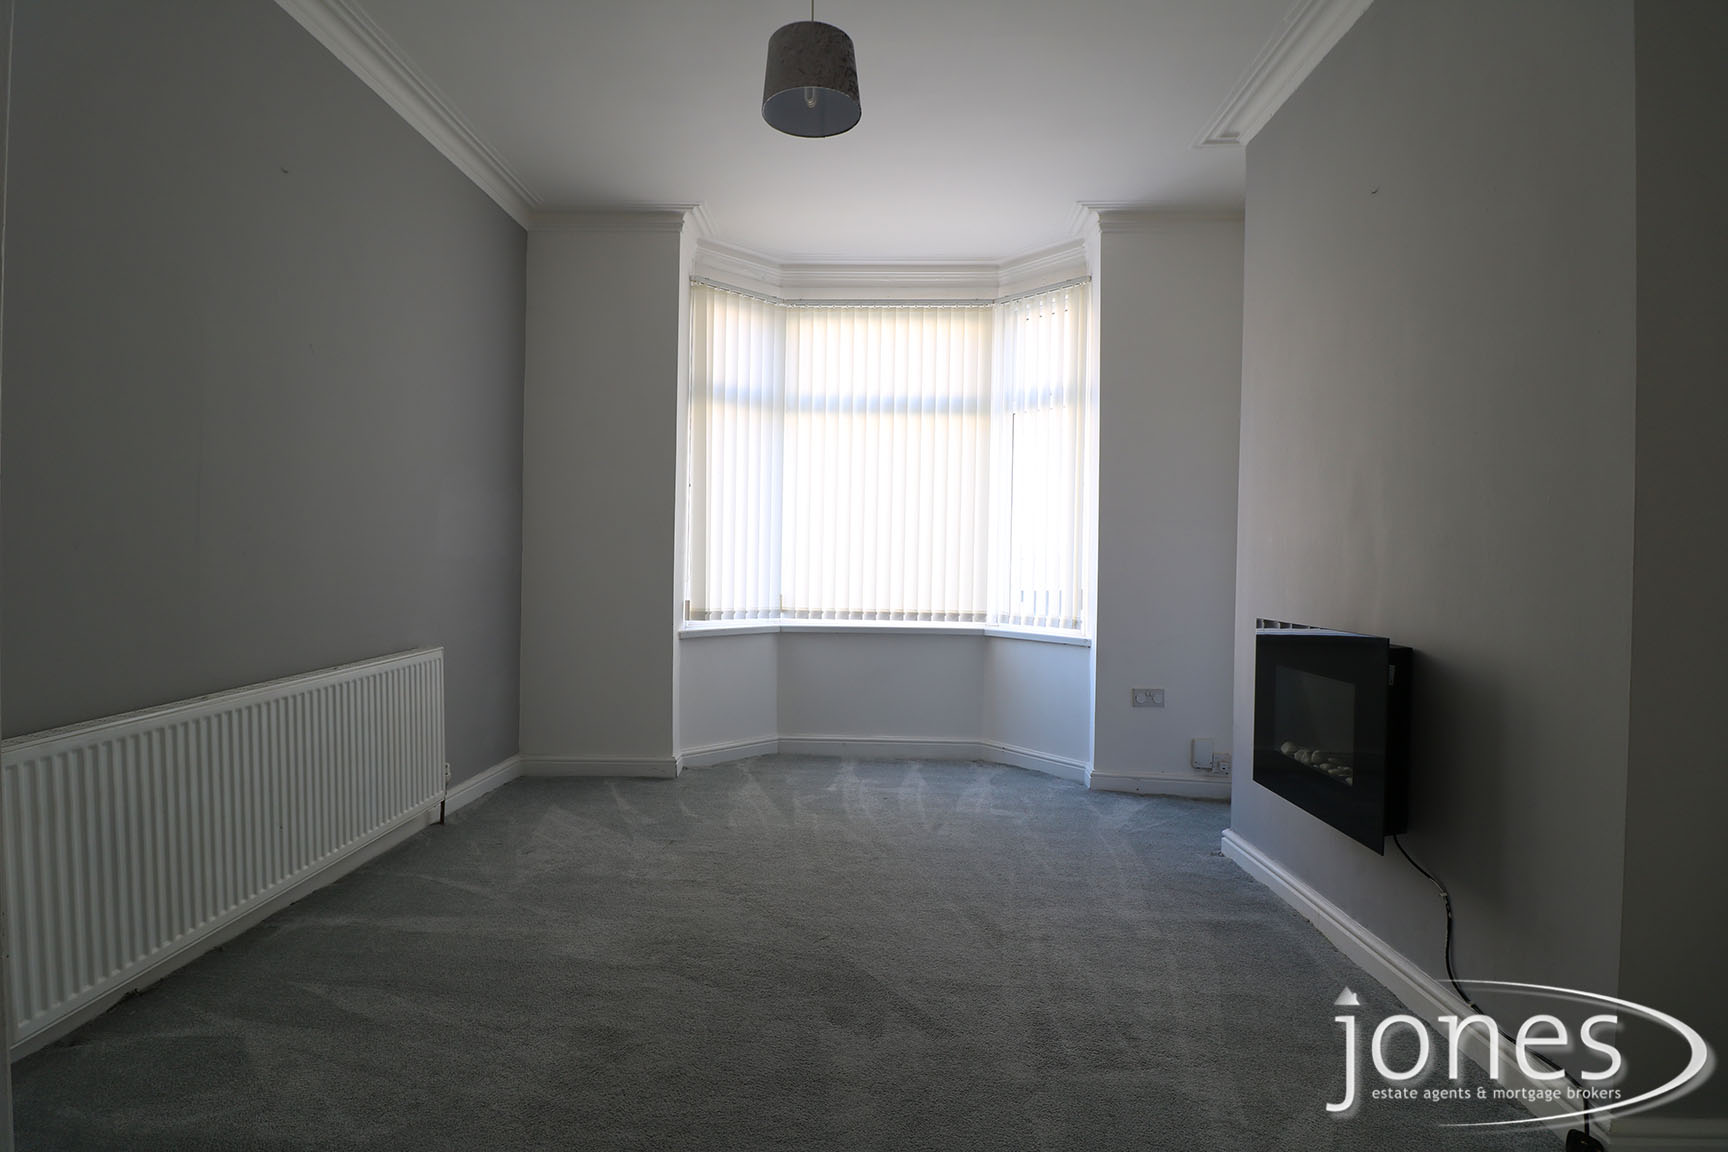 Home for Sale Let - Photo 02 Castlereagh Road,  Stockton on Tees, TS19 0DL